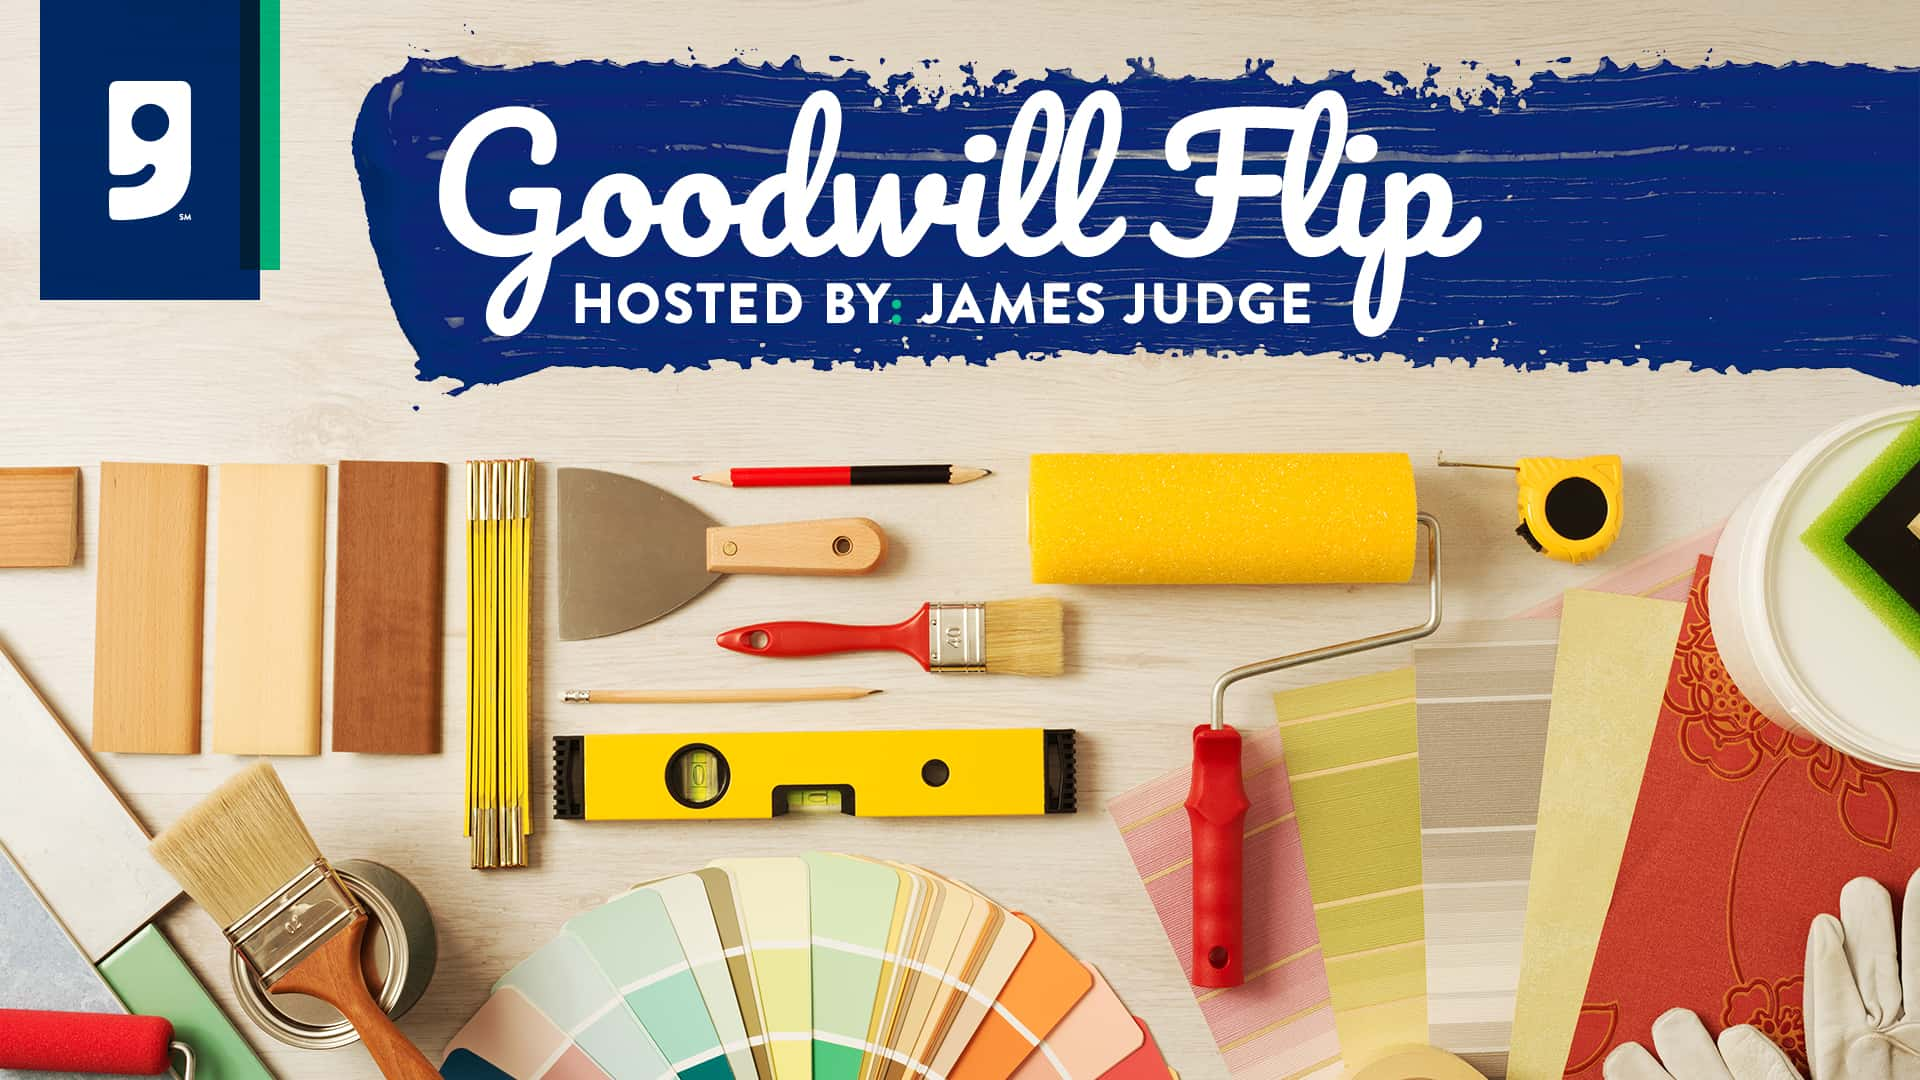 Goodwill Flip Hosted By: James Judge